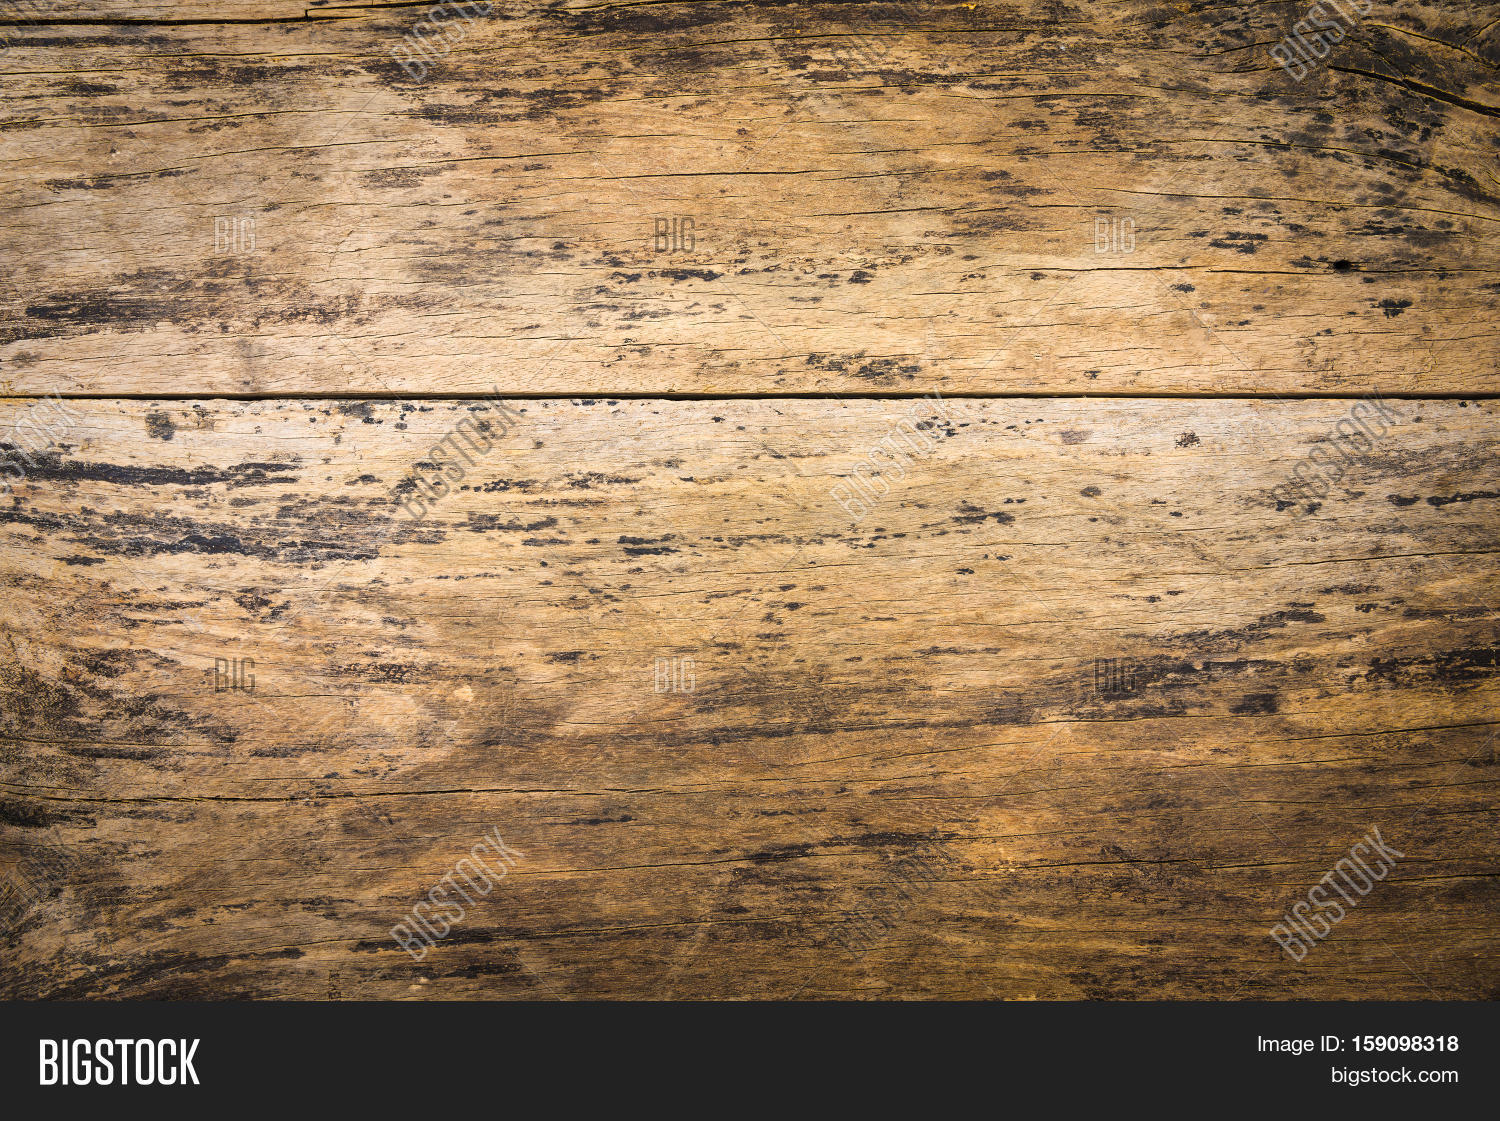 Old wood texture image photo bigstock